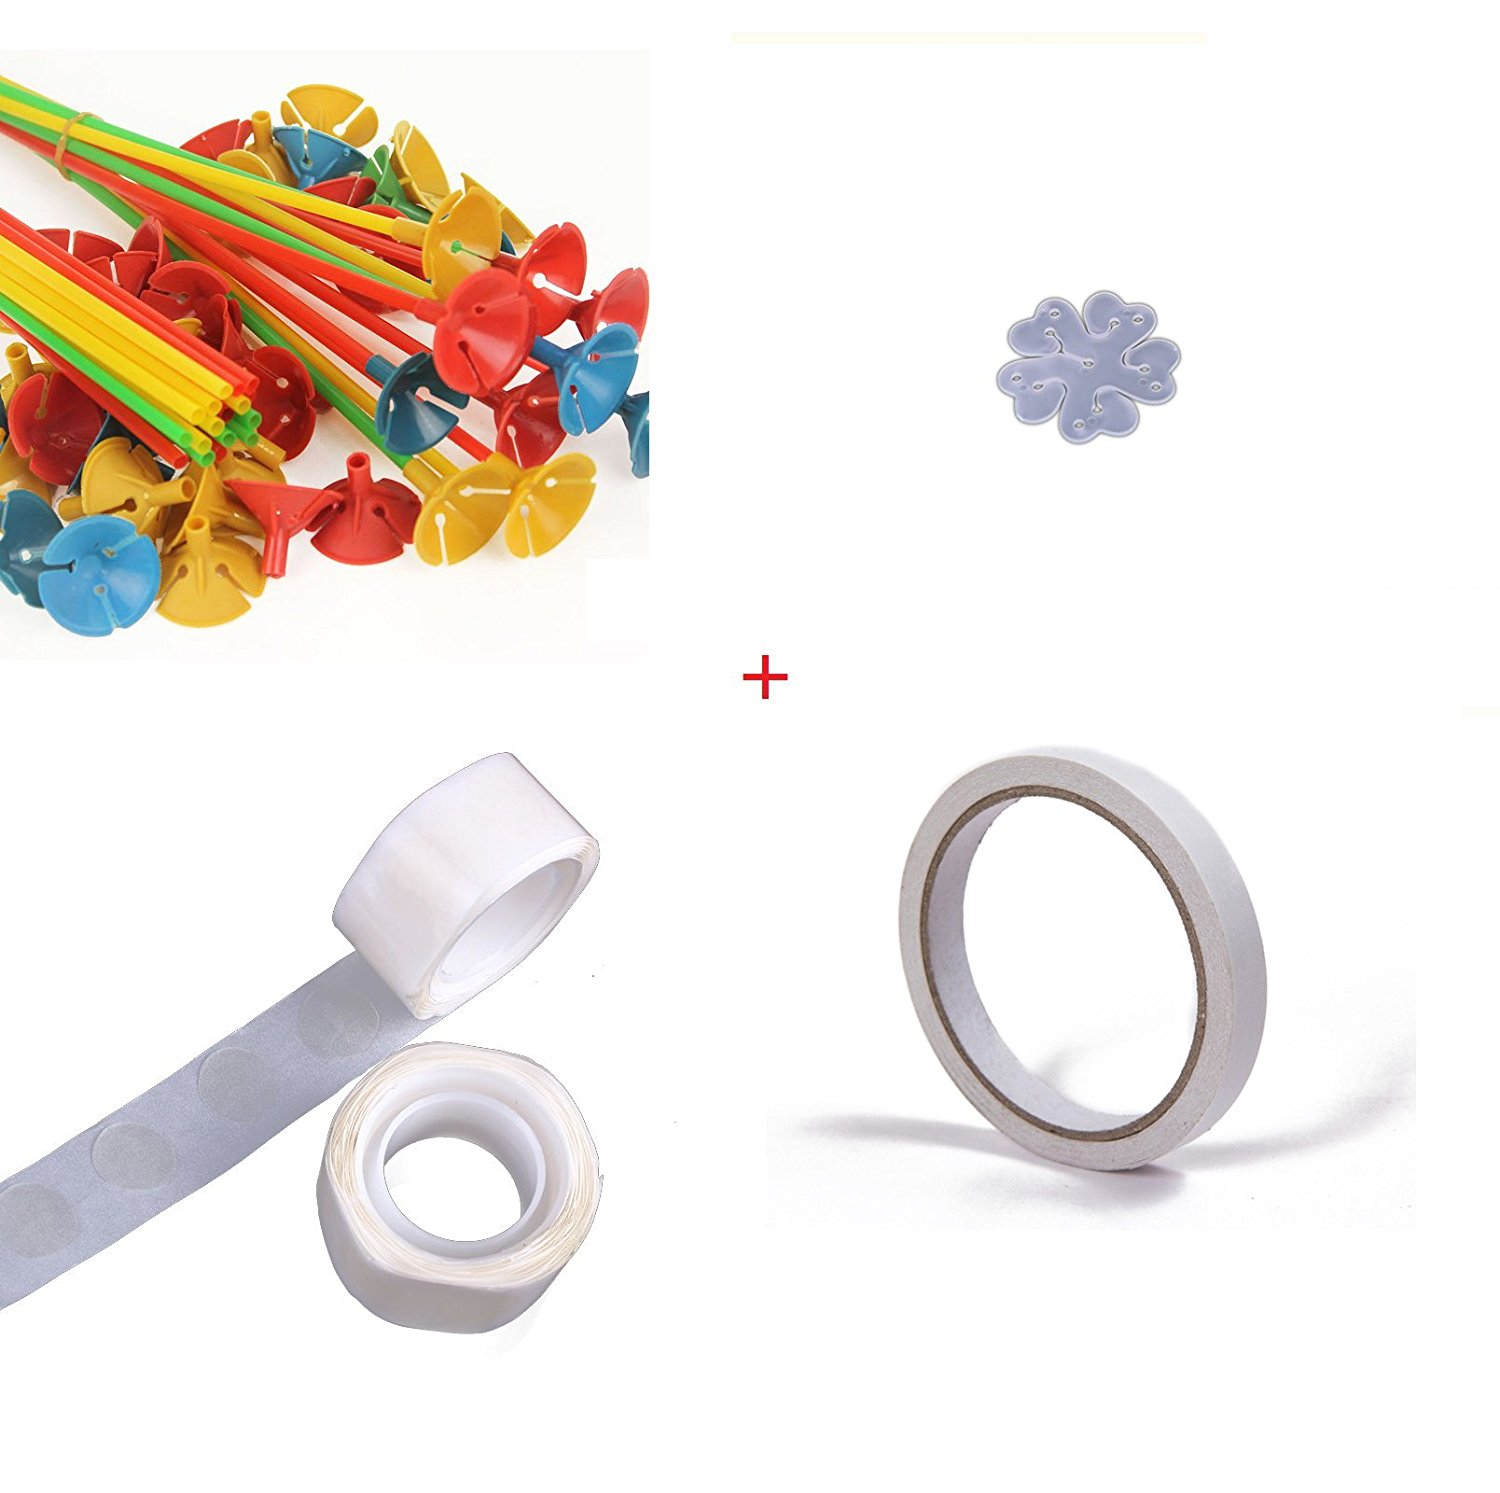 Cindy&Will 1 Set Decorative Balloons Double Sided Type & Spot Stick Type & Balloon Rings & Sticks